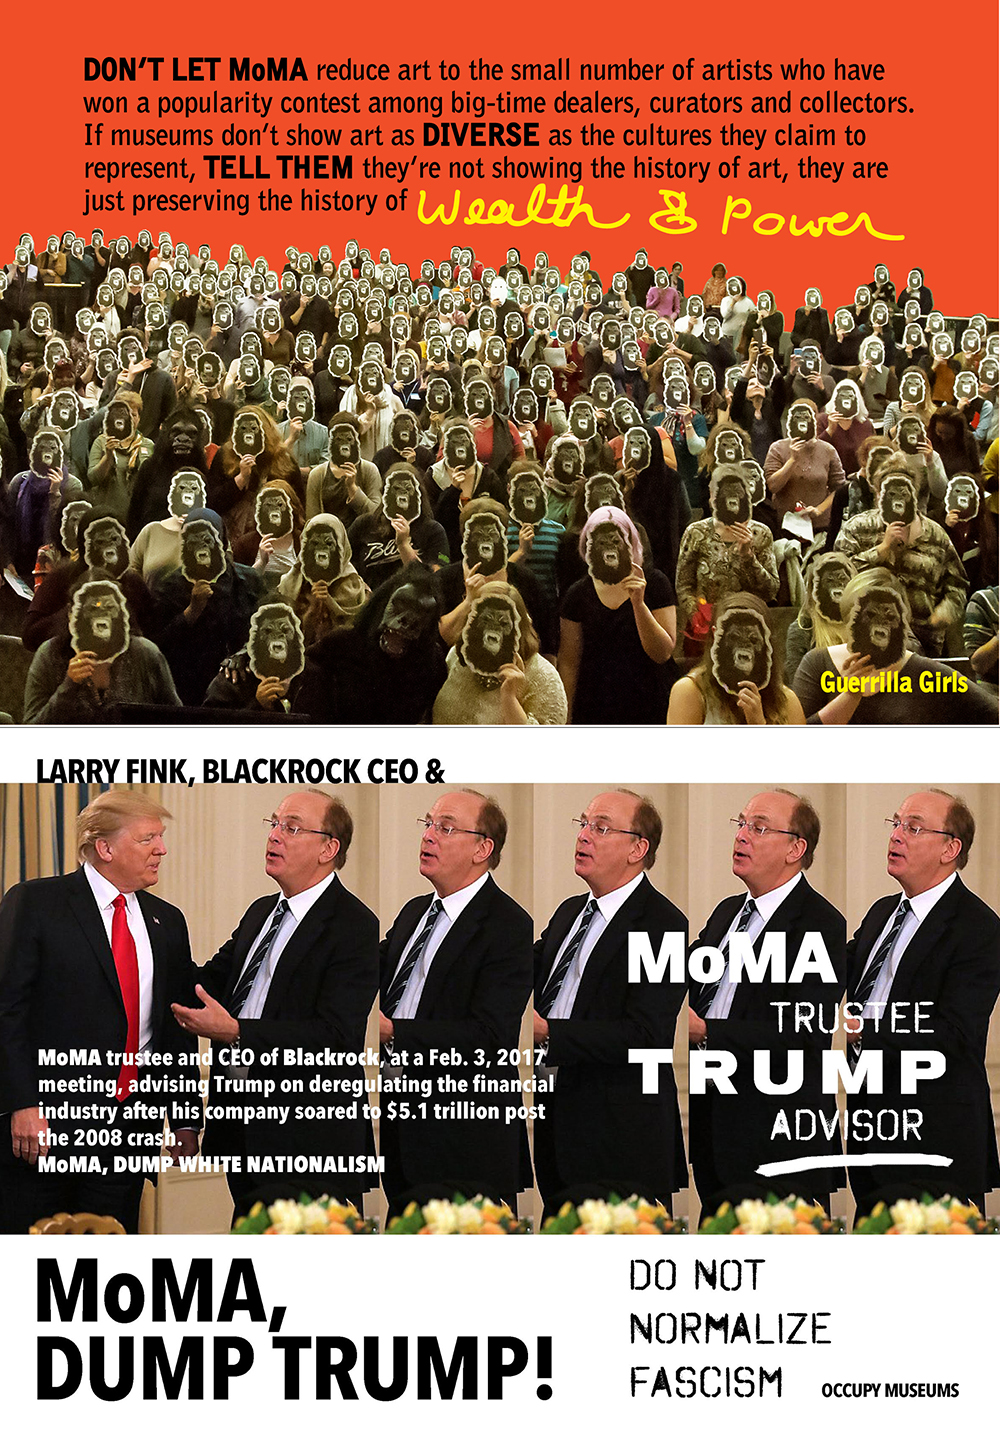 GUERRILLA GIRLS AND OCCUPY MUSEUMS, MOMA